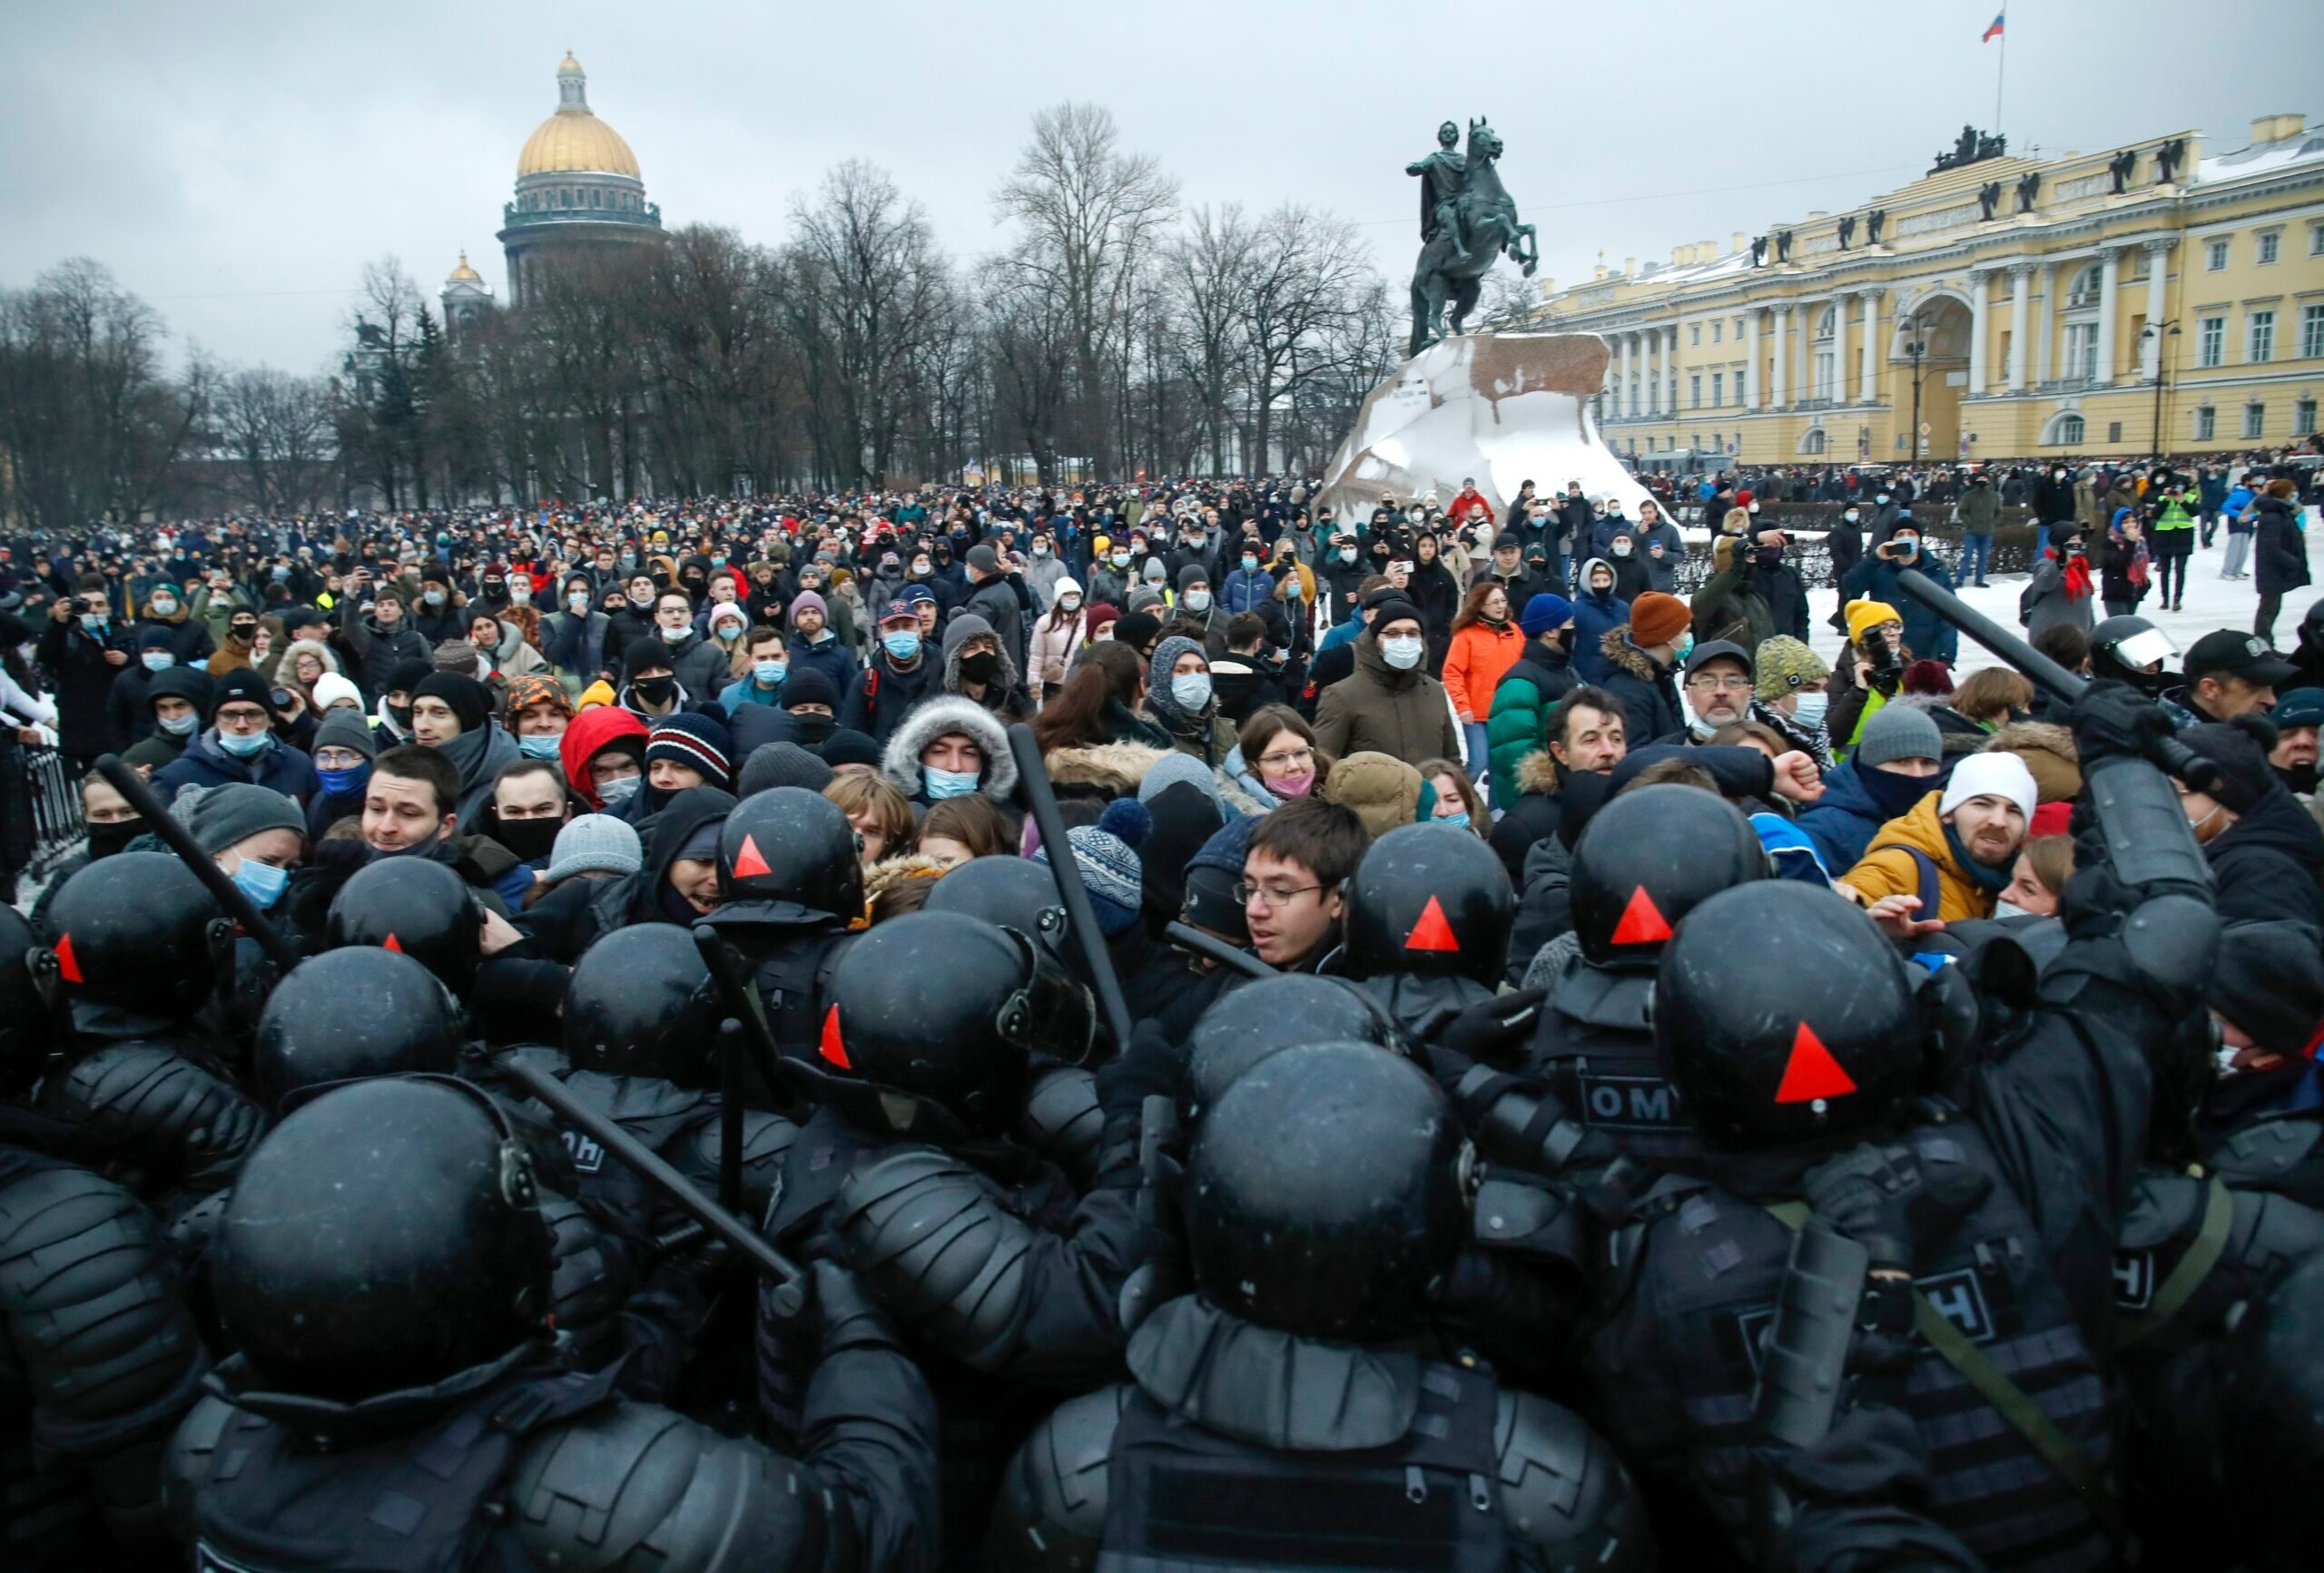 2,100 Arrested at Protests Demanding Navalny's Release - snopes